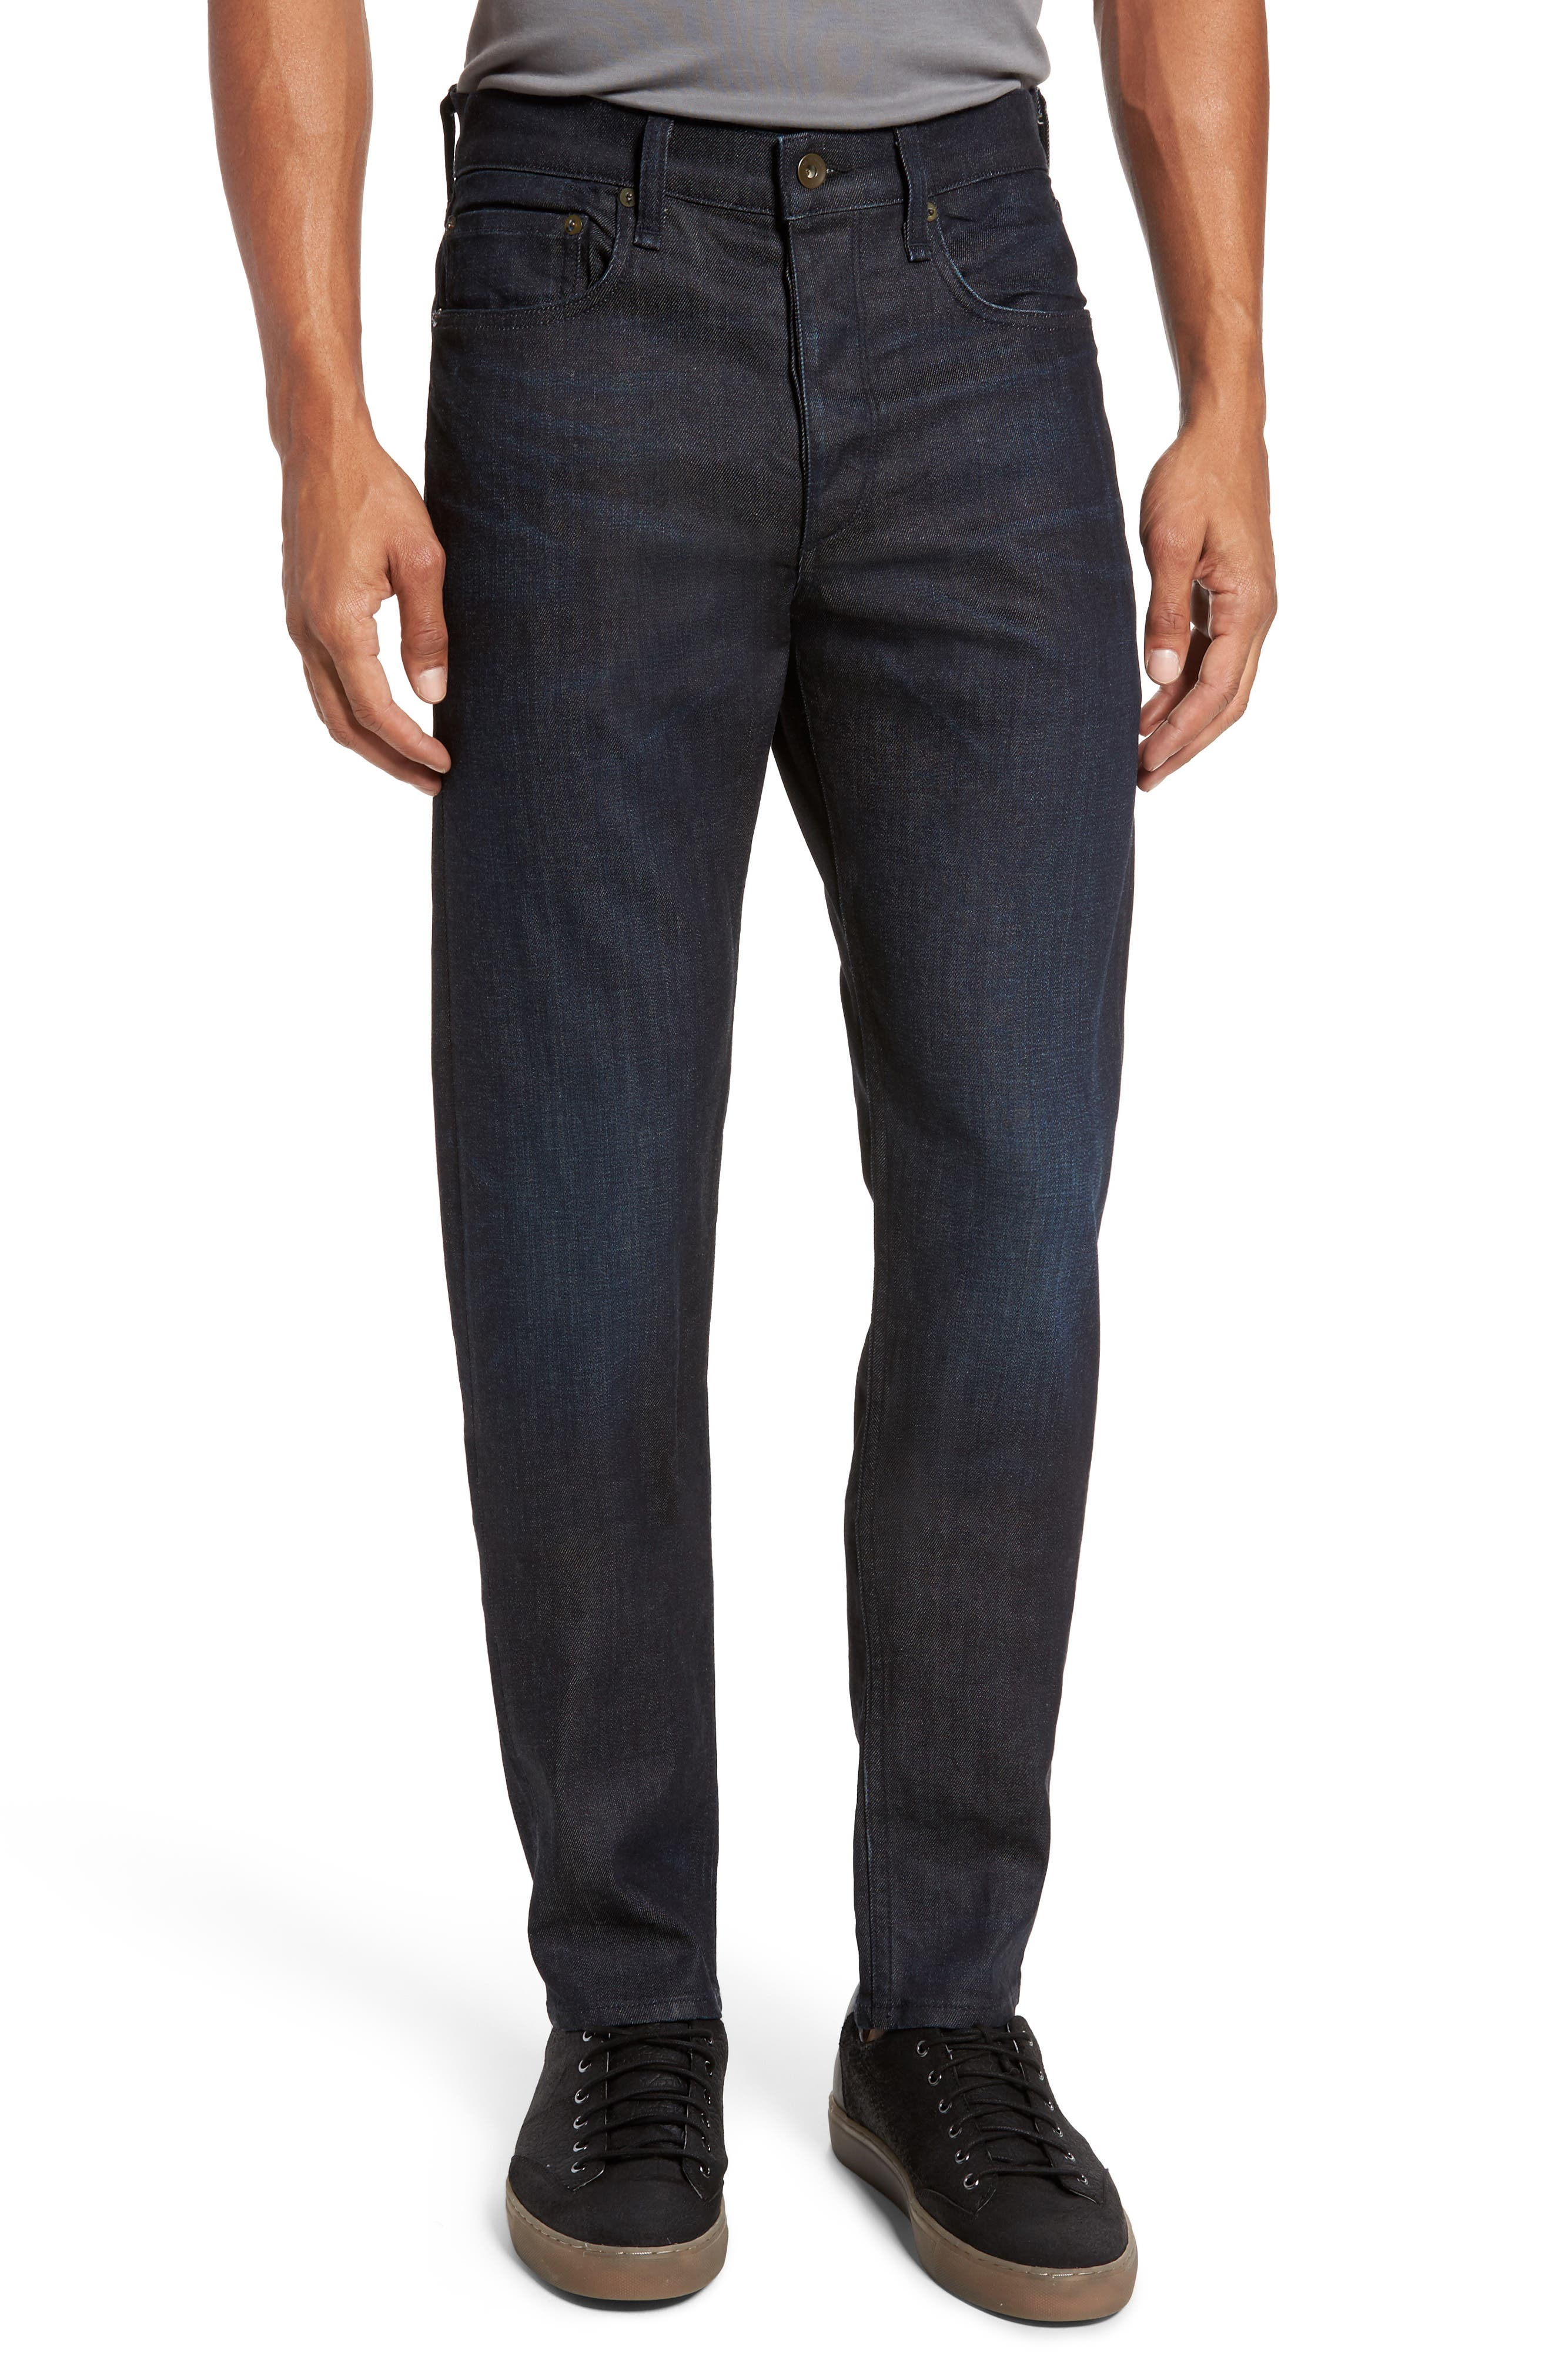 Transcend - Lennox Slim Fit Jeans,                         Main,                         color, 400